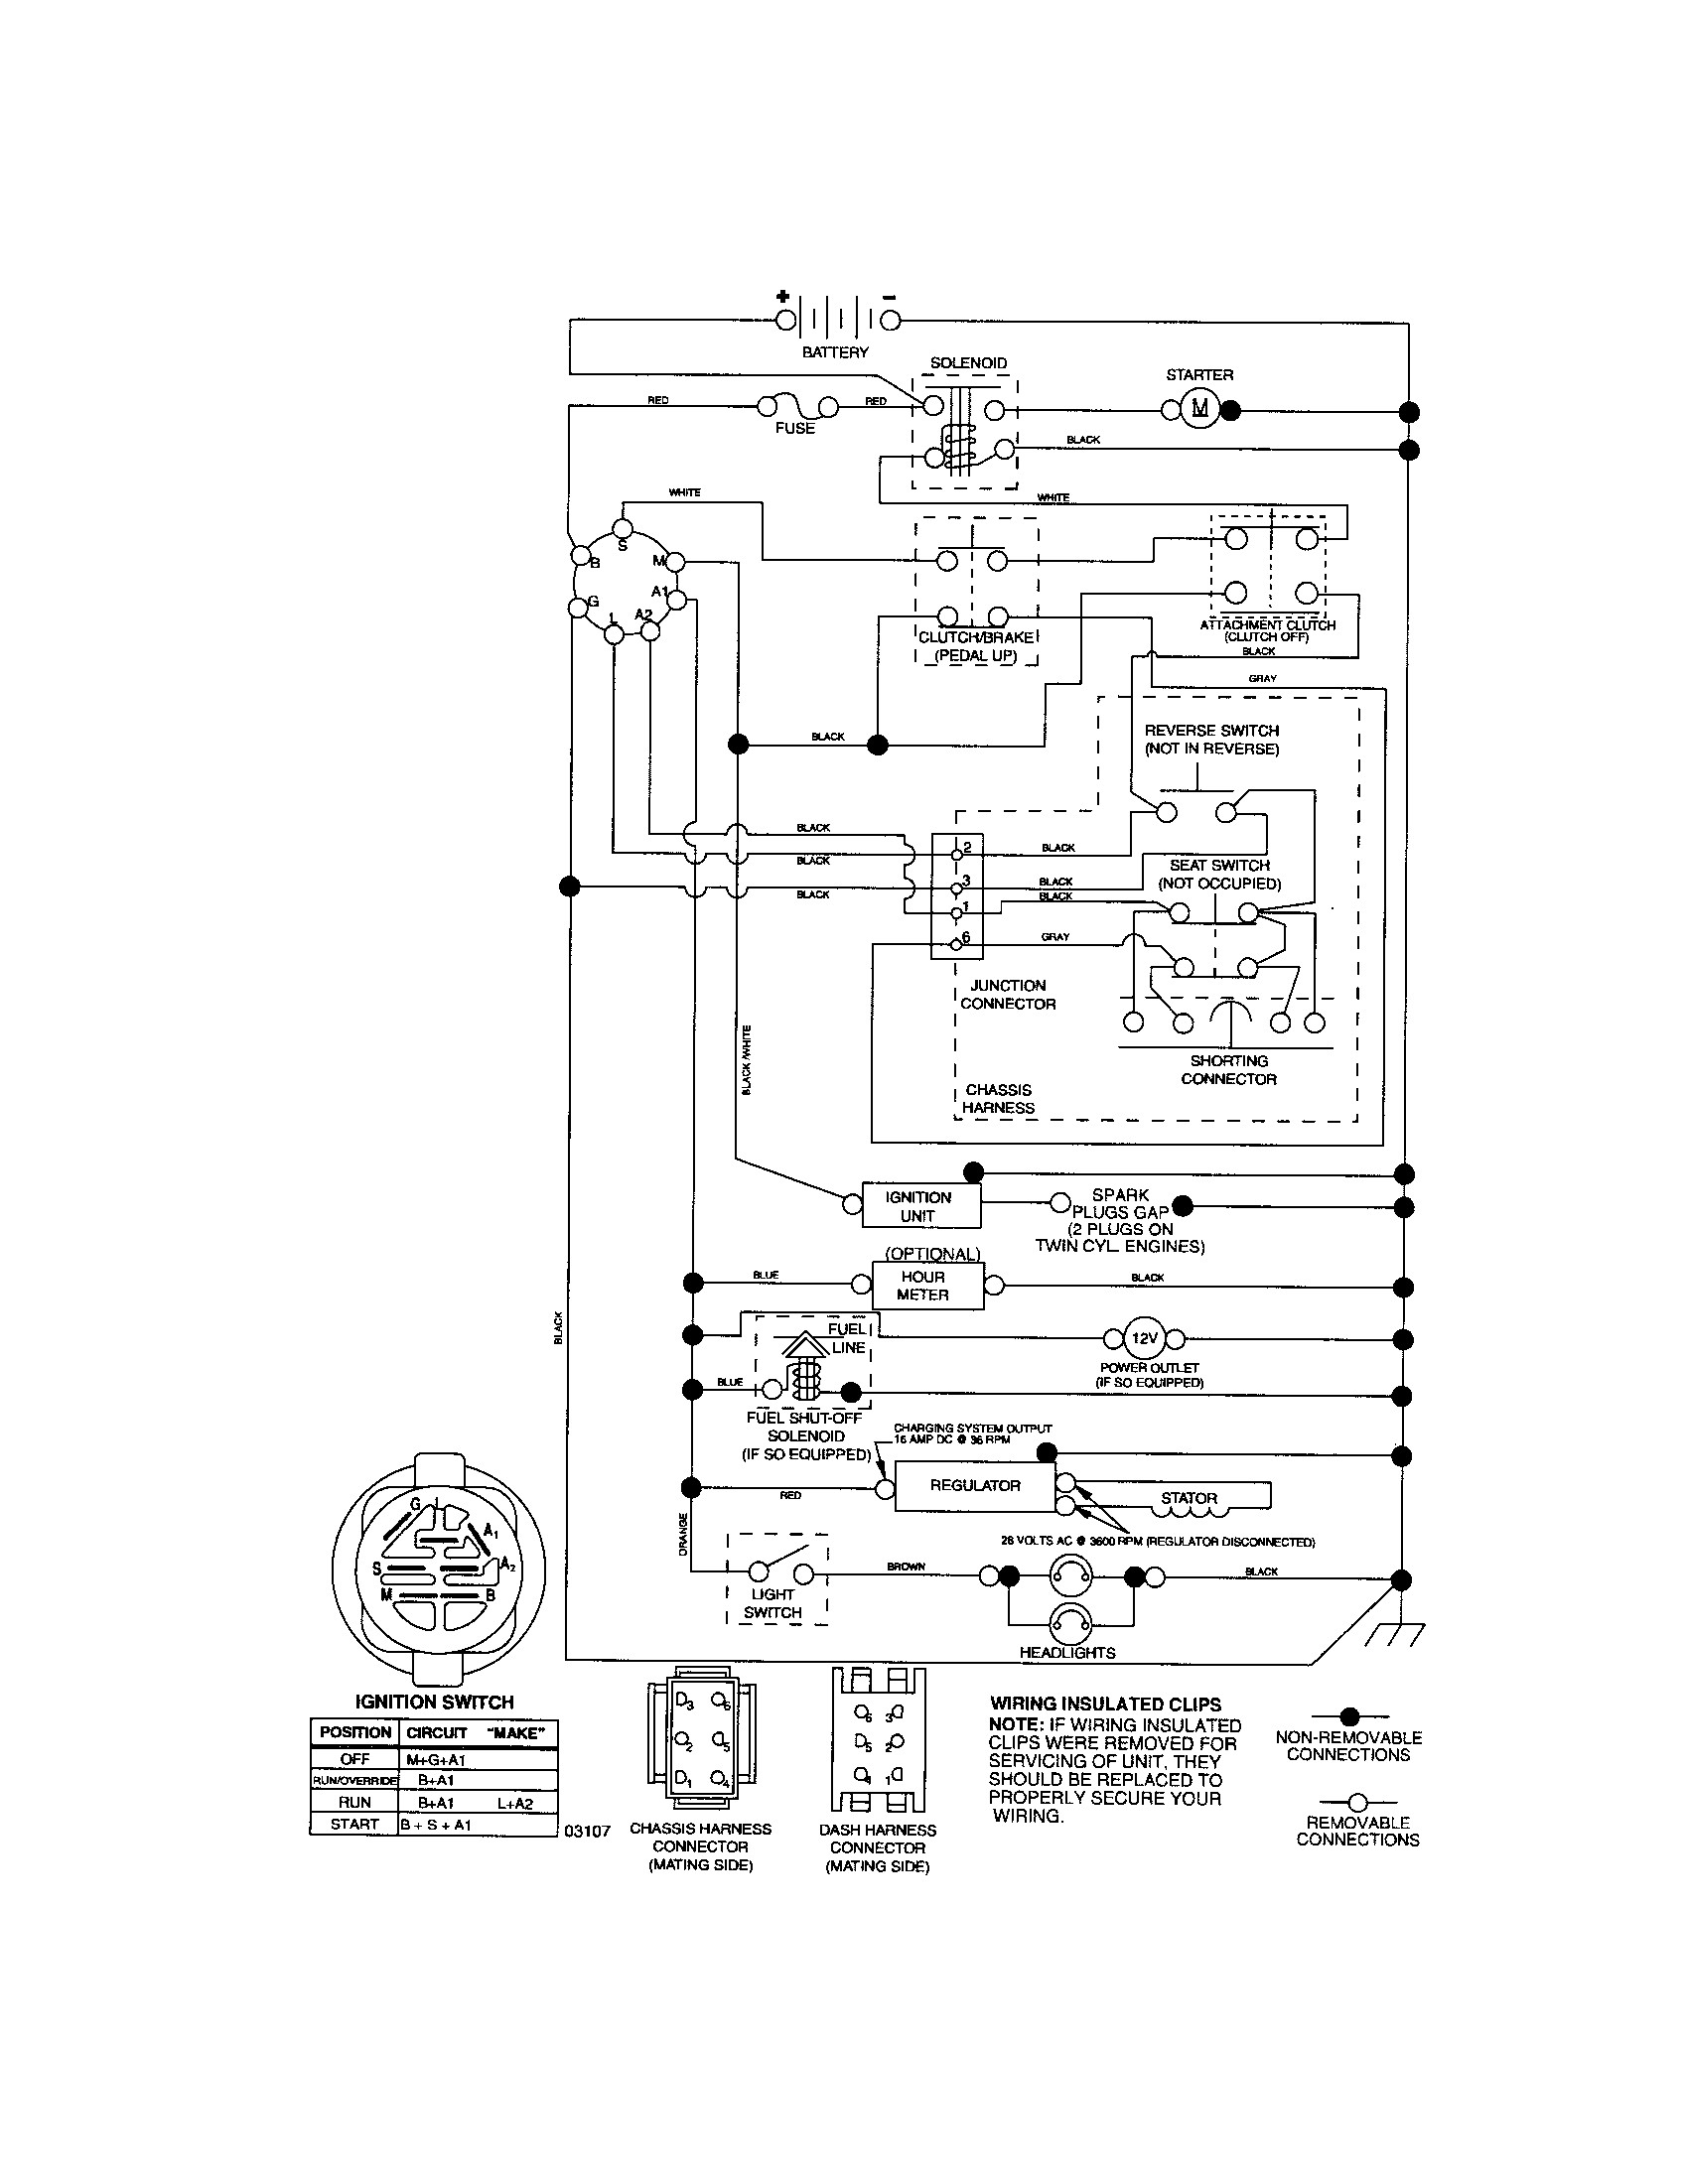 Small Engine Repair Diagrams Craftsman Riding Mower Electrical Diagram Of Small Engine Repair Diagrams Switch Wiring Diagram Collection